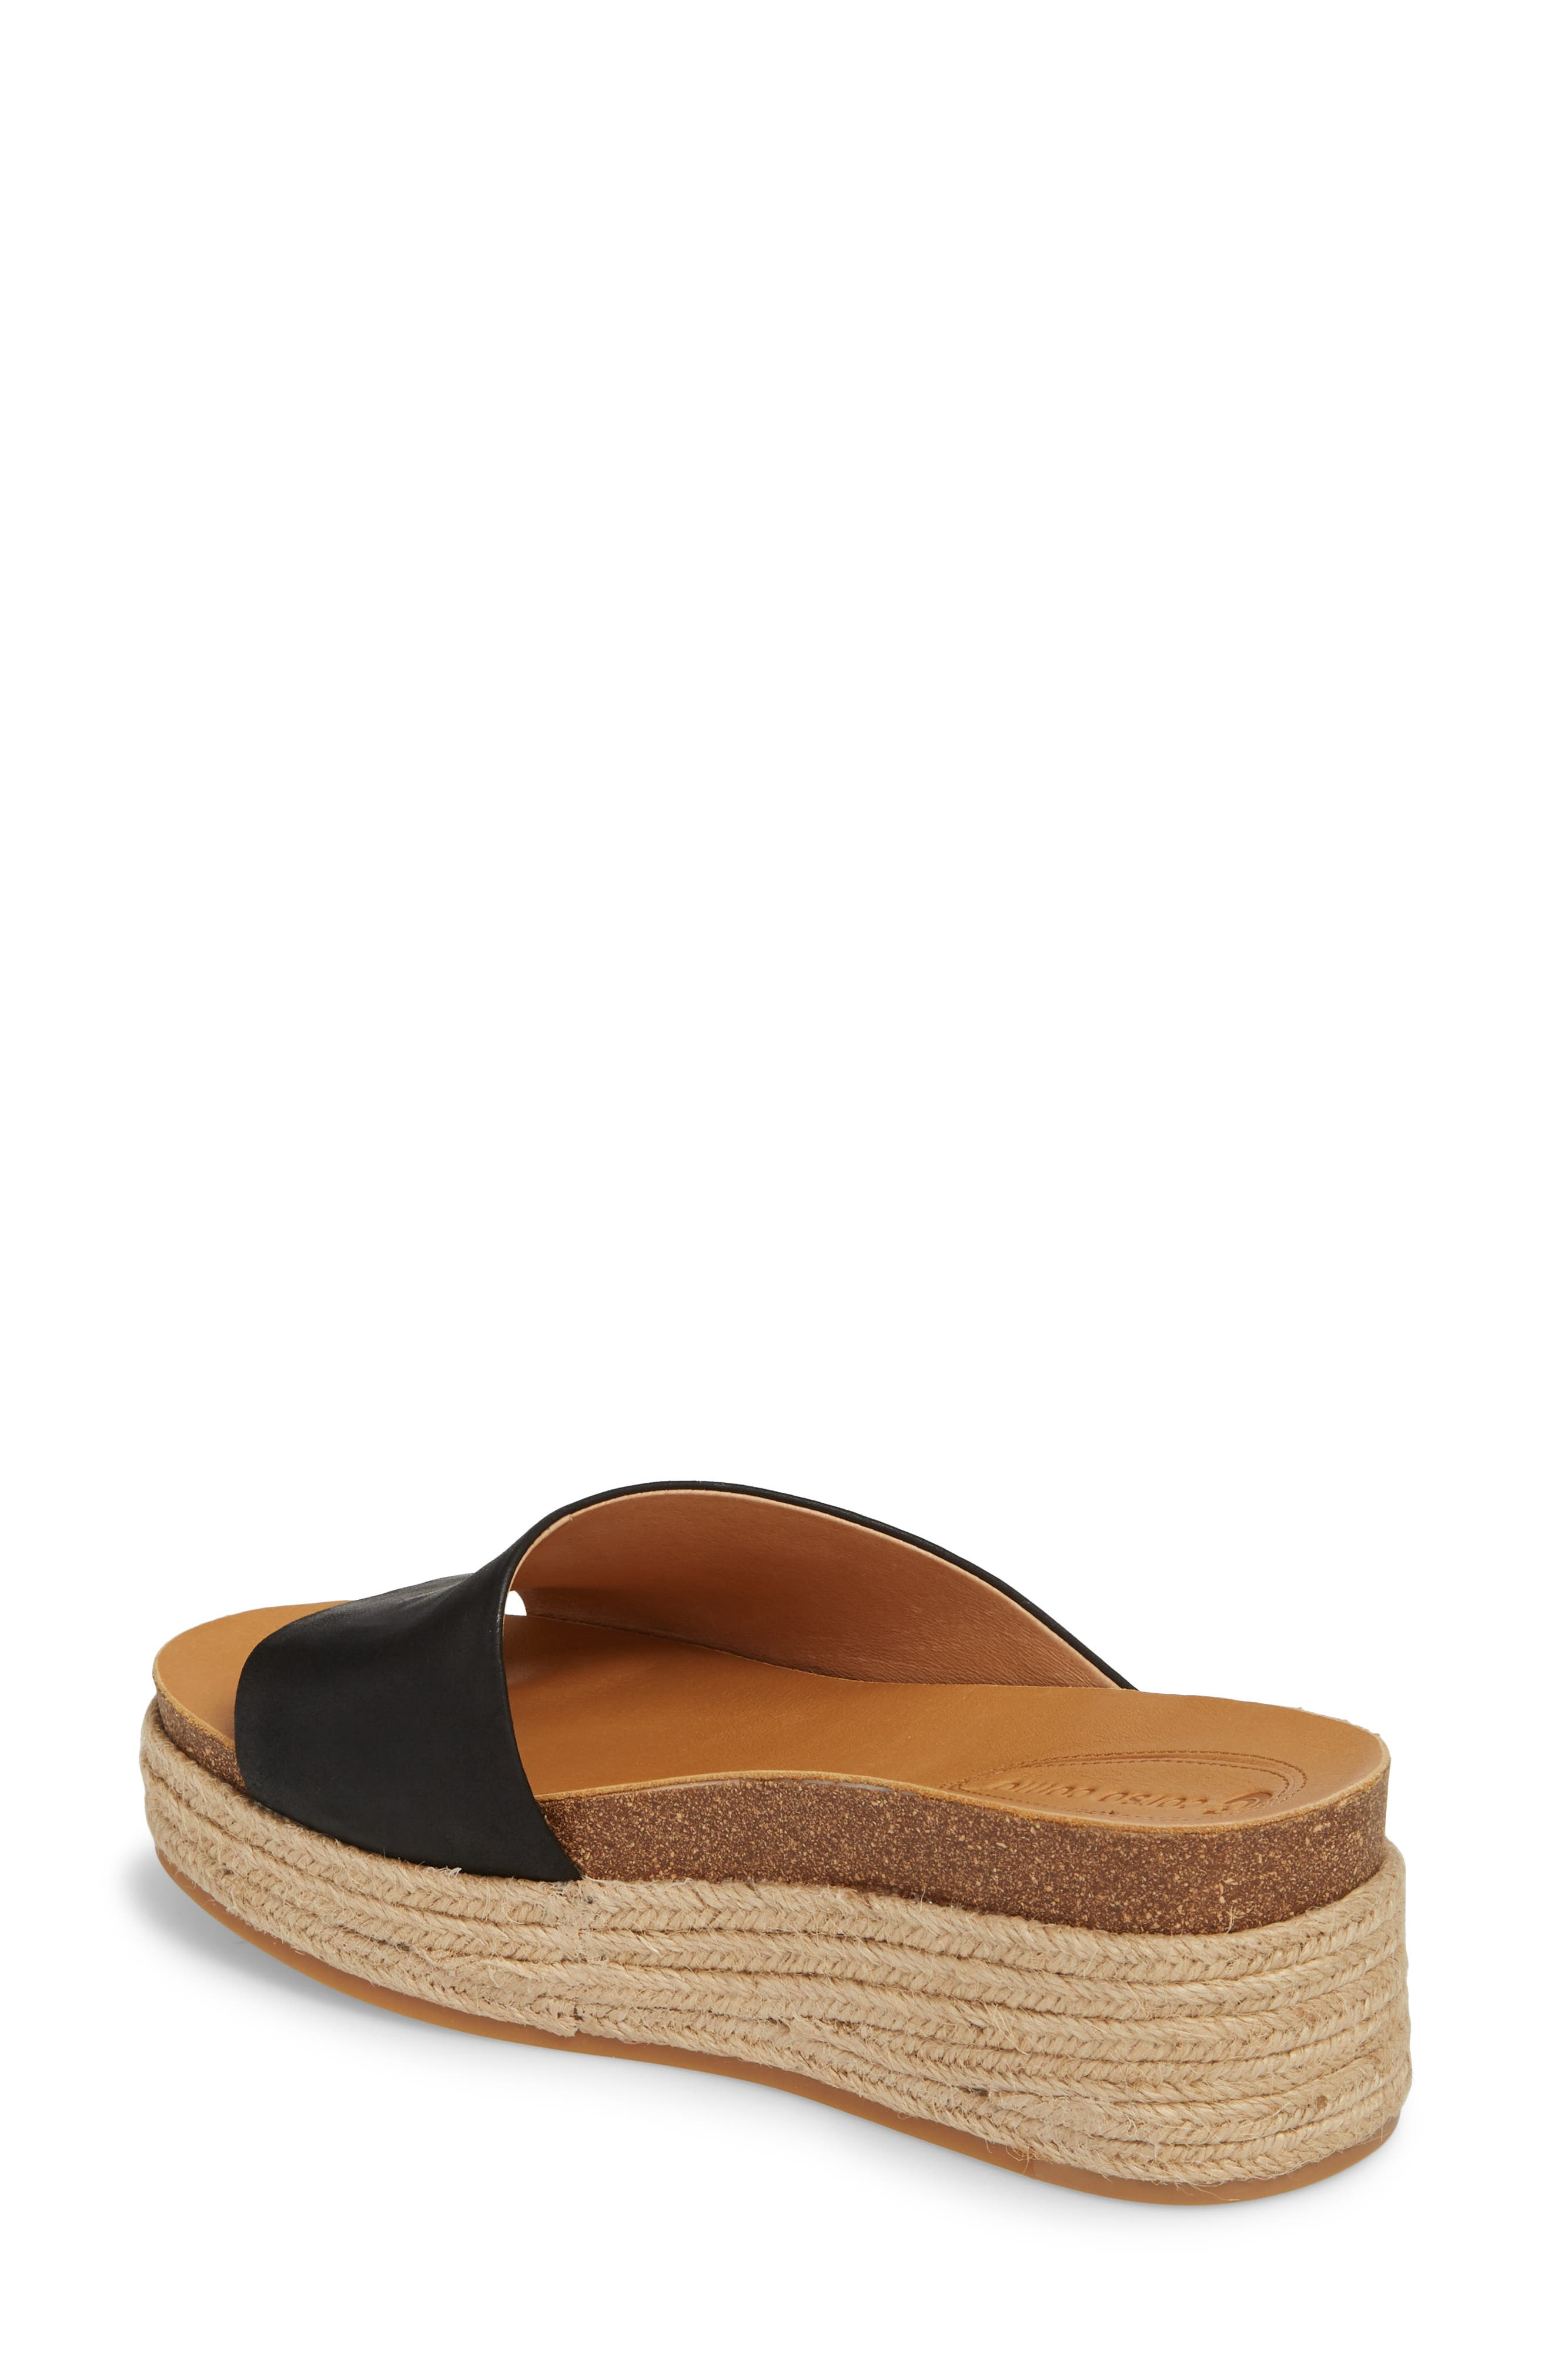 CC CORSO COMO<SUP>®</SUP>, Candice Sandal, Alternate thumbnail 2, color, BLACK LEATHER